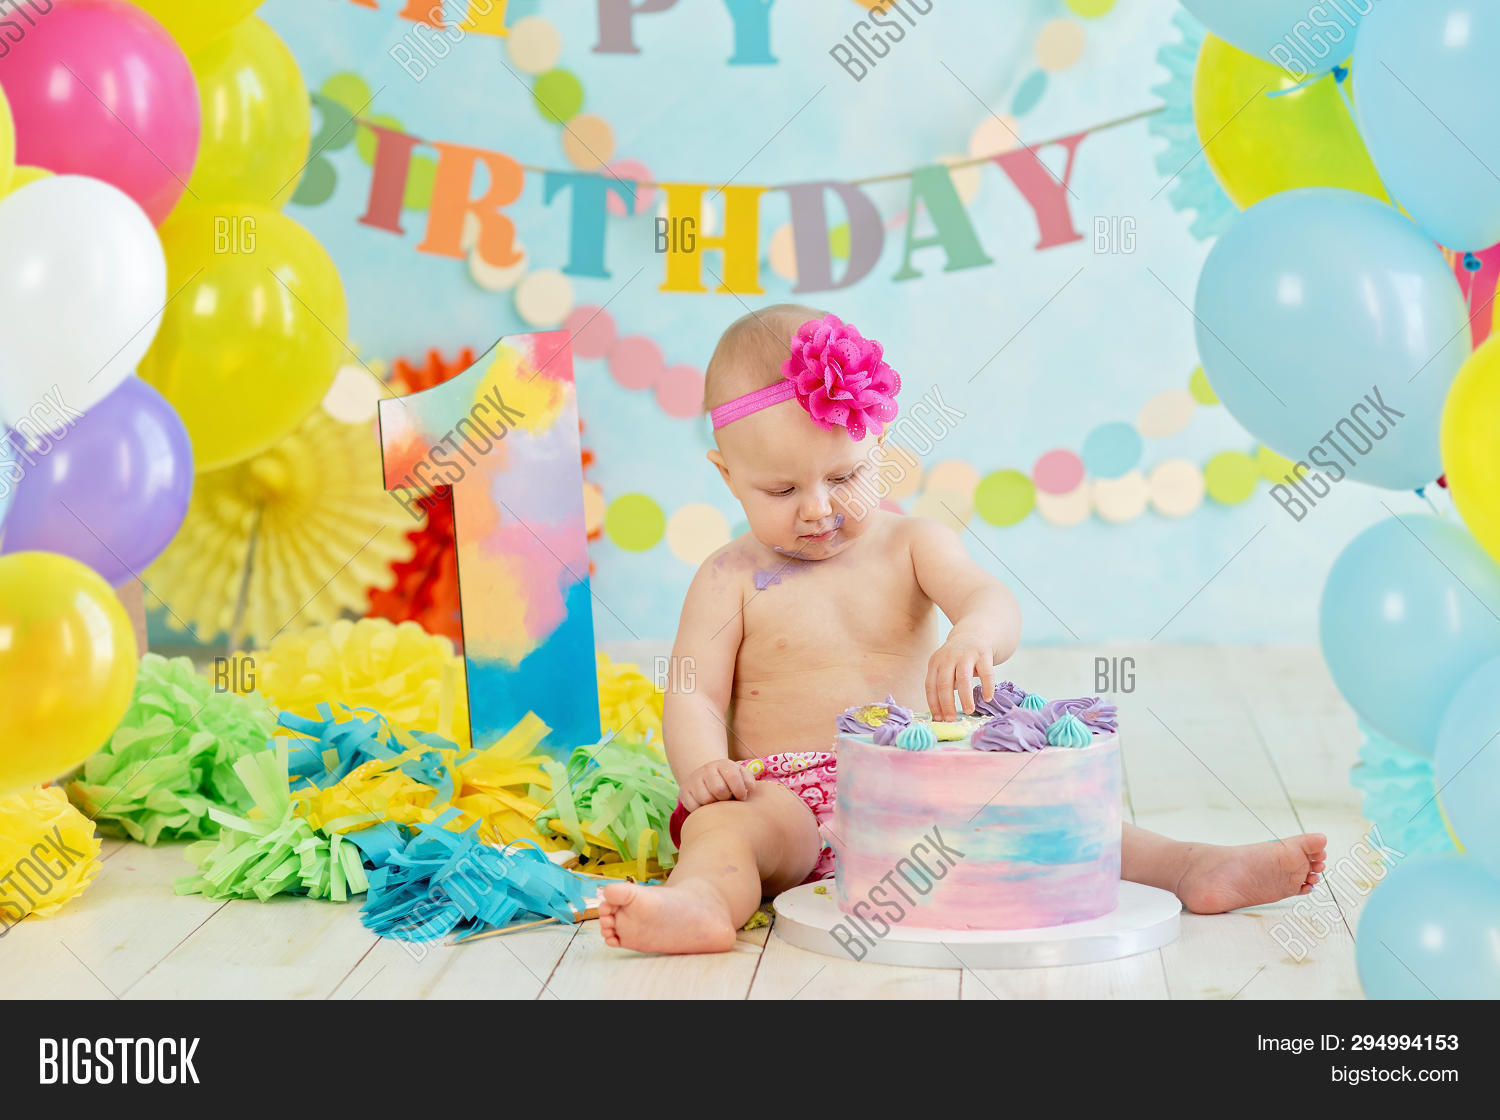 First Birthday Smash The Cake Cream On Legs Festive Background Decoration For With Year Concept Greetings